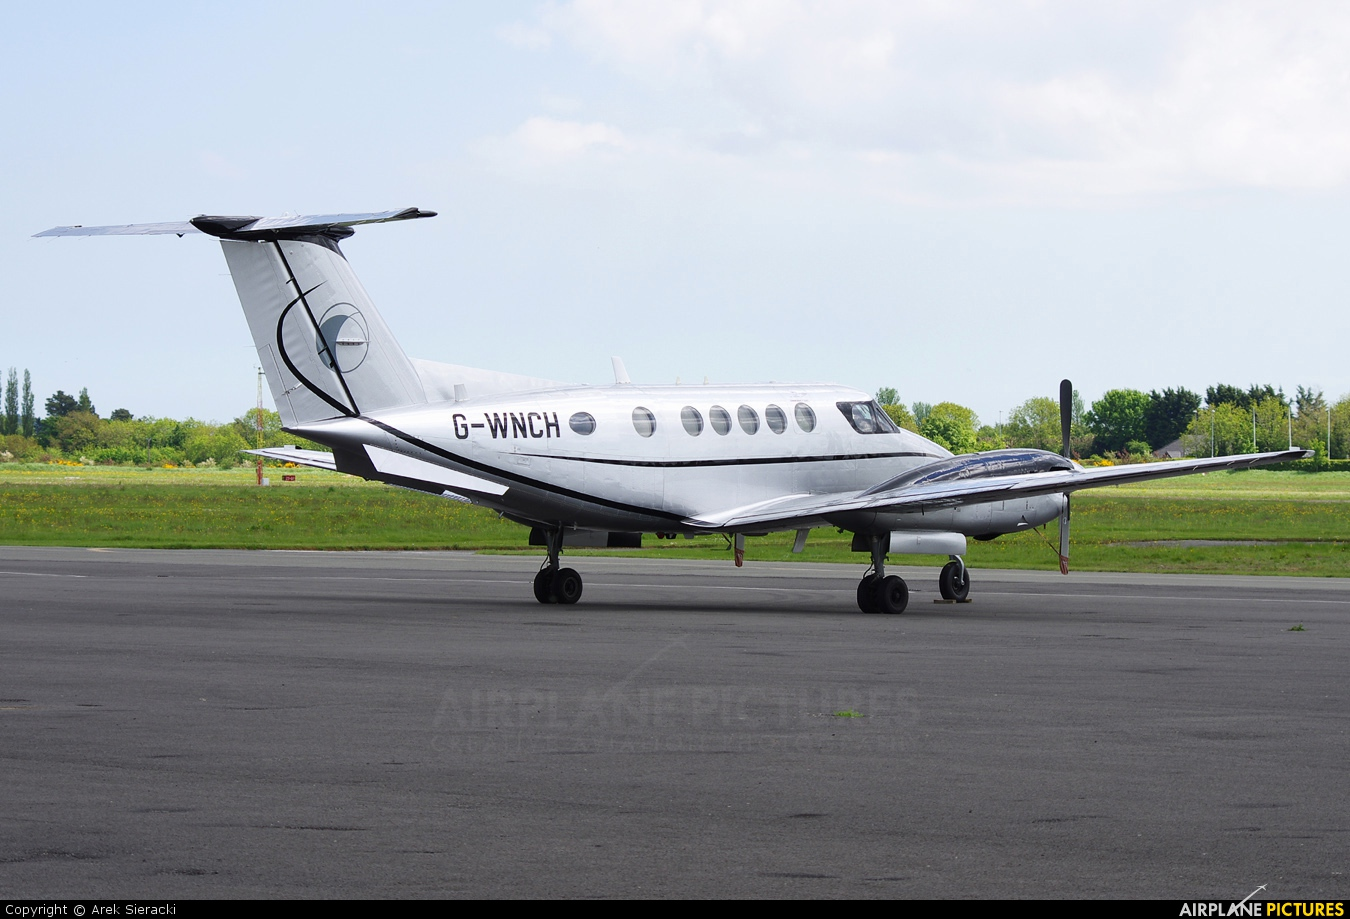 Synergy Aircraft Leasing G-WNCH aircraft at Weston